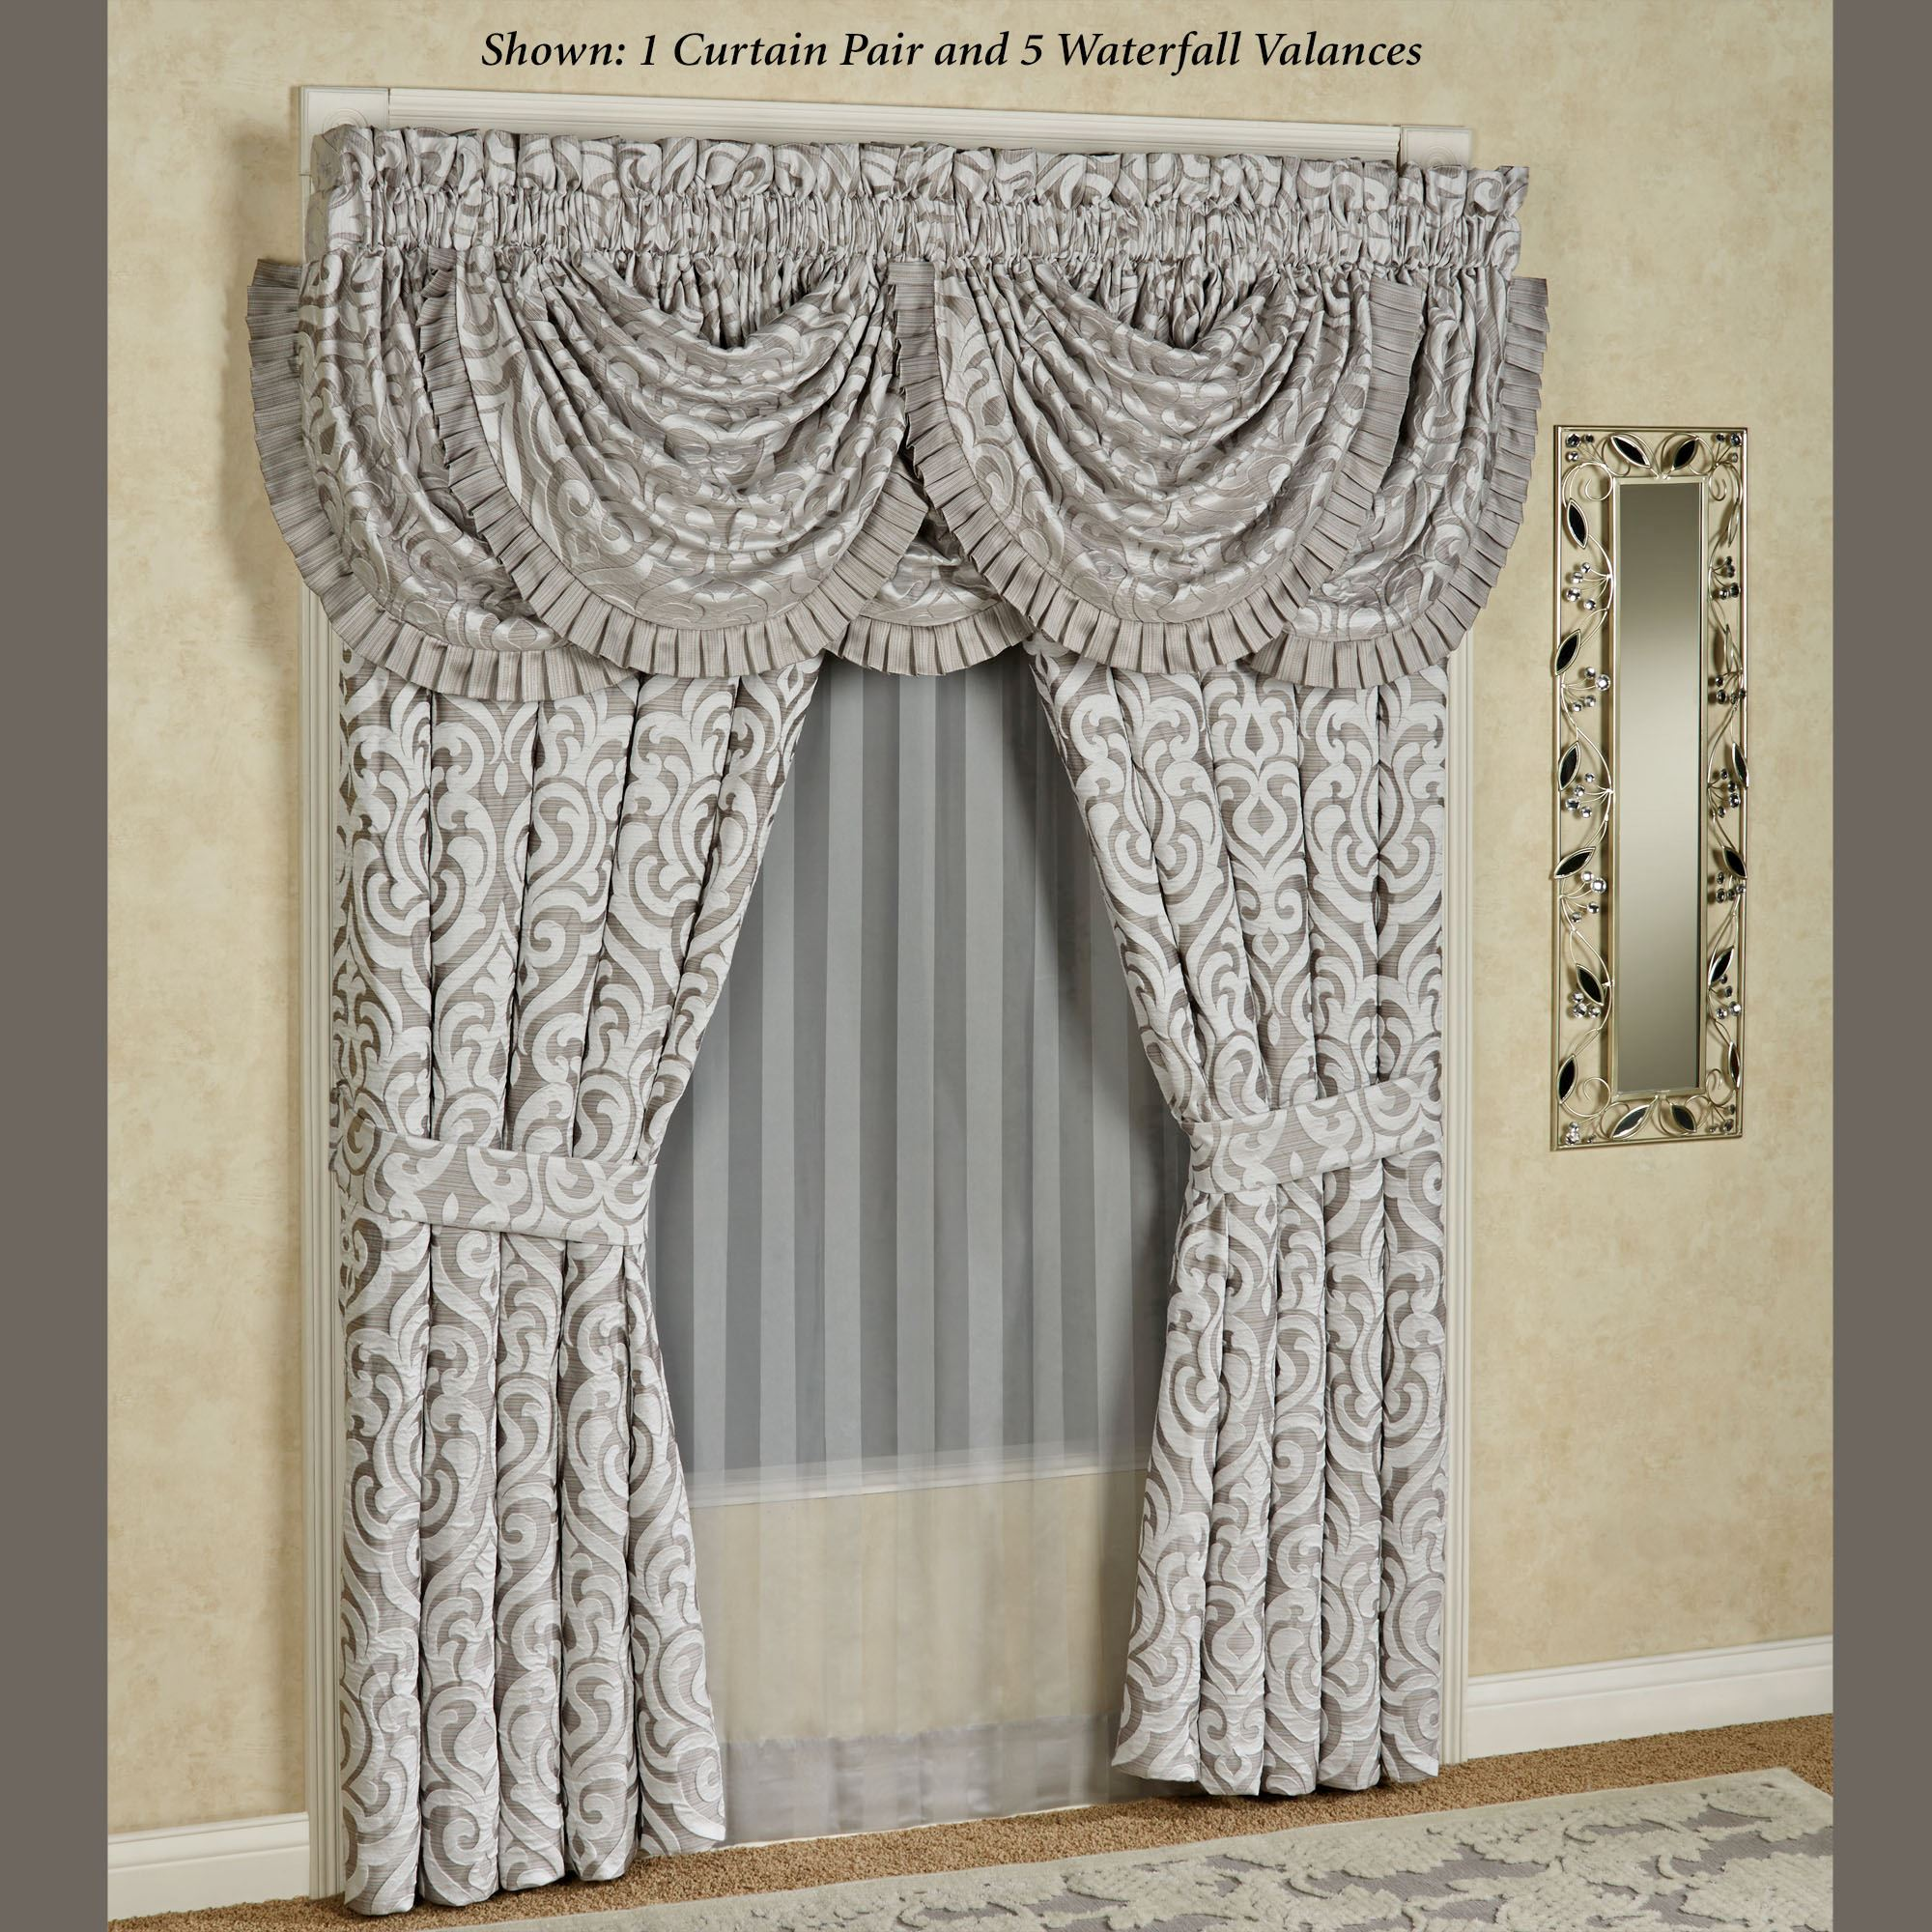 curtain southwest texas suede sale york mustard galileo medallion queen design colton grey full j images atalmart size houston in color curtainonderful for new by wonderful target shower amazon curtains windowshower of faux bathroom